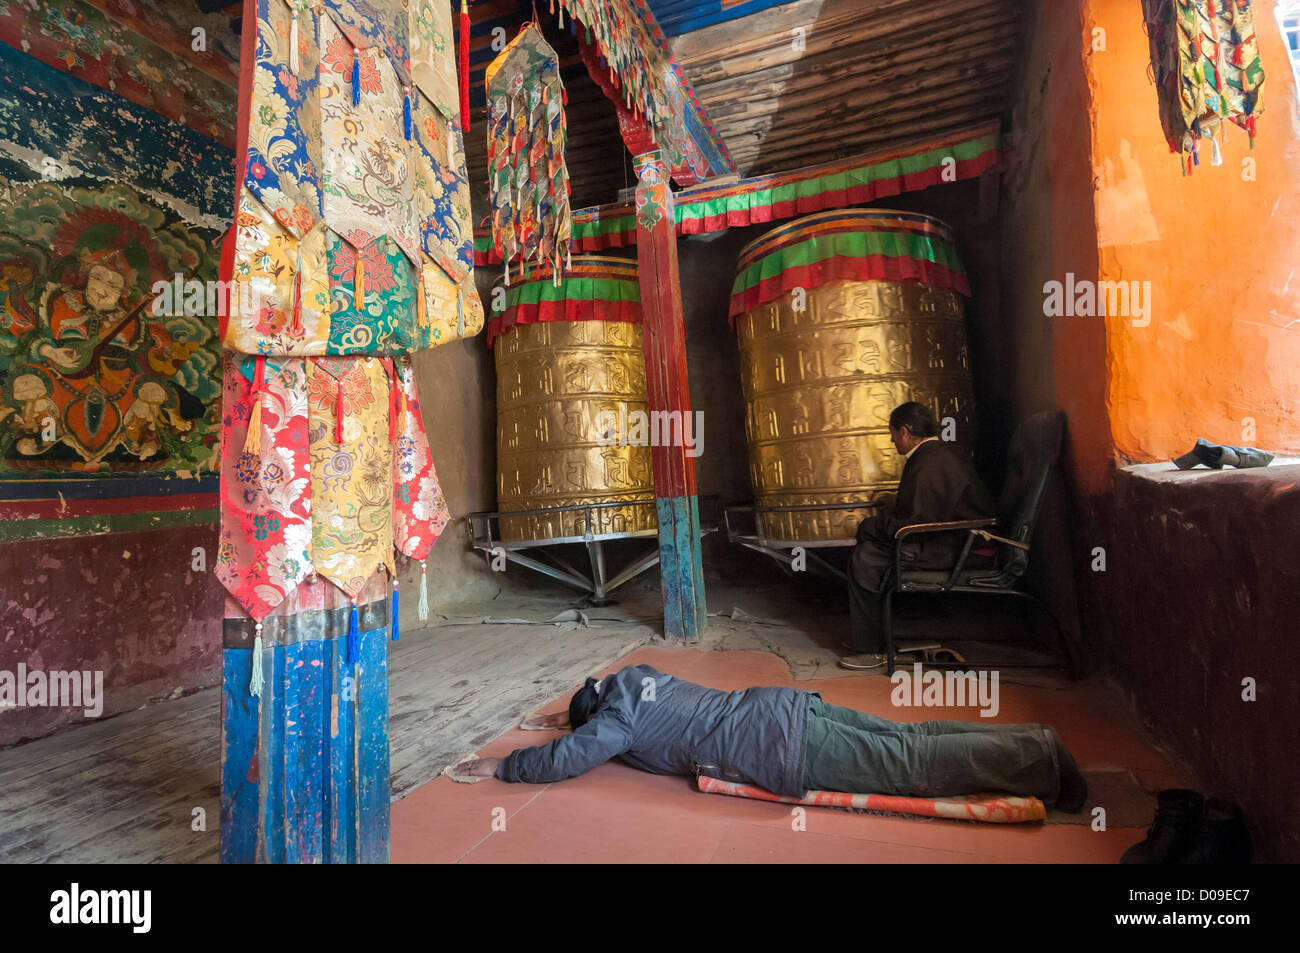 Pilgrim prays at entrance to temple of Drigung Terdrom Nunnery, Tibet, China - Stock Image